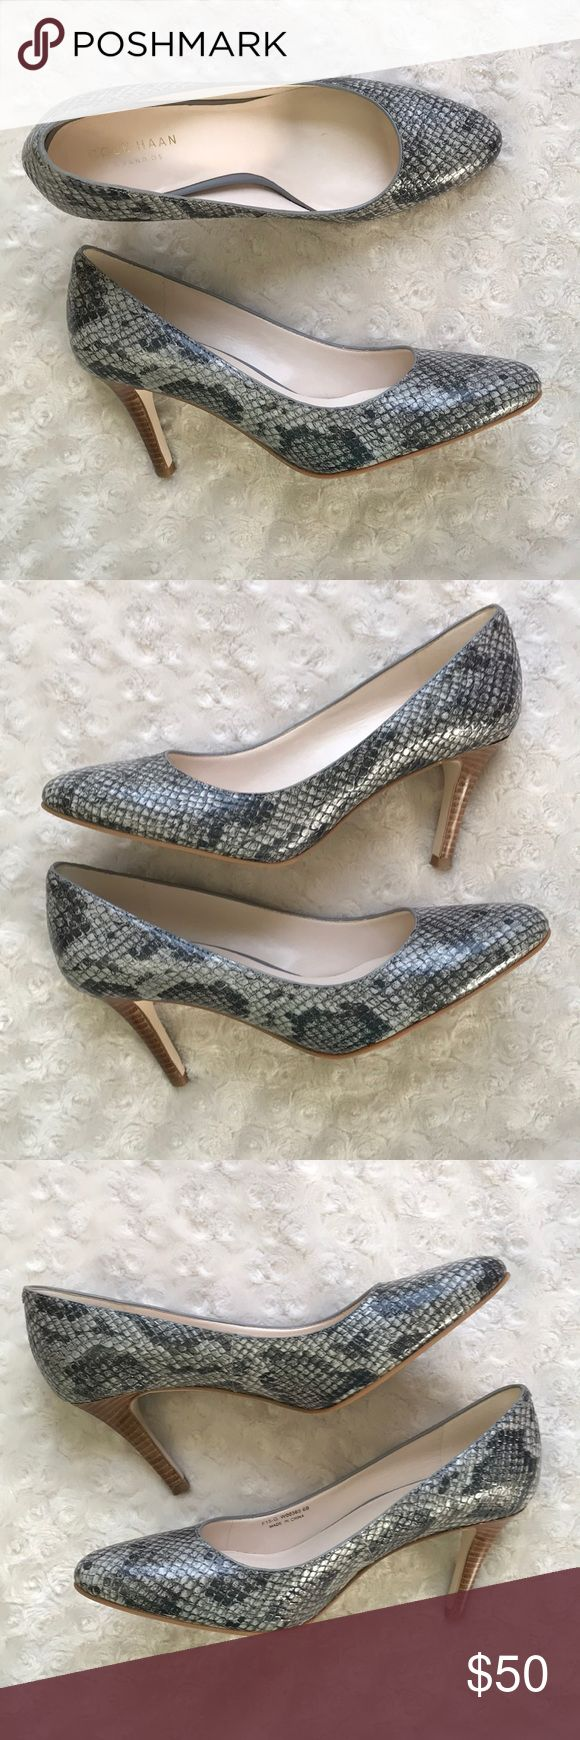 Cole Haan 6B Pumps Heels Grand OS Reptile Cole Haan Grand OS Pumps Size 6B - Reptile/Snakeskin pattern - Unsure if faux or real Light scuffs on right toe area, blend in well. Silver marks on soles. Smoke free home. Cole Haan Shoes Heels